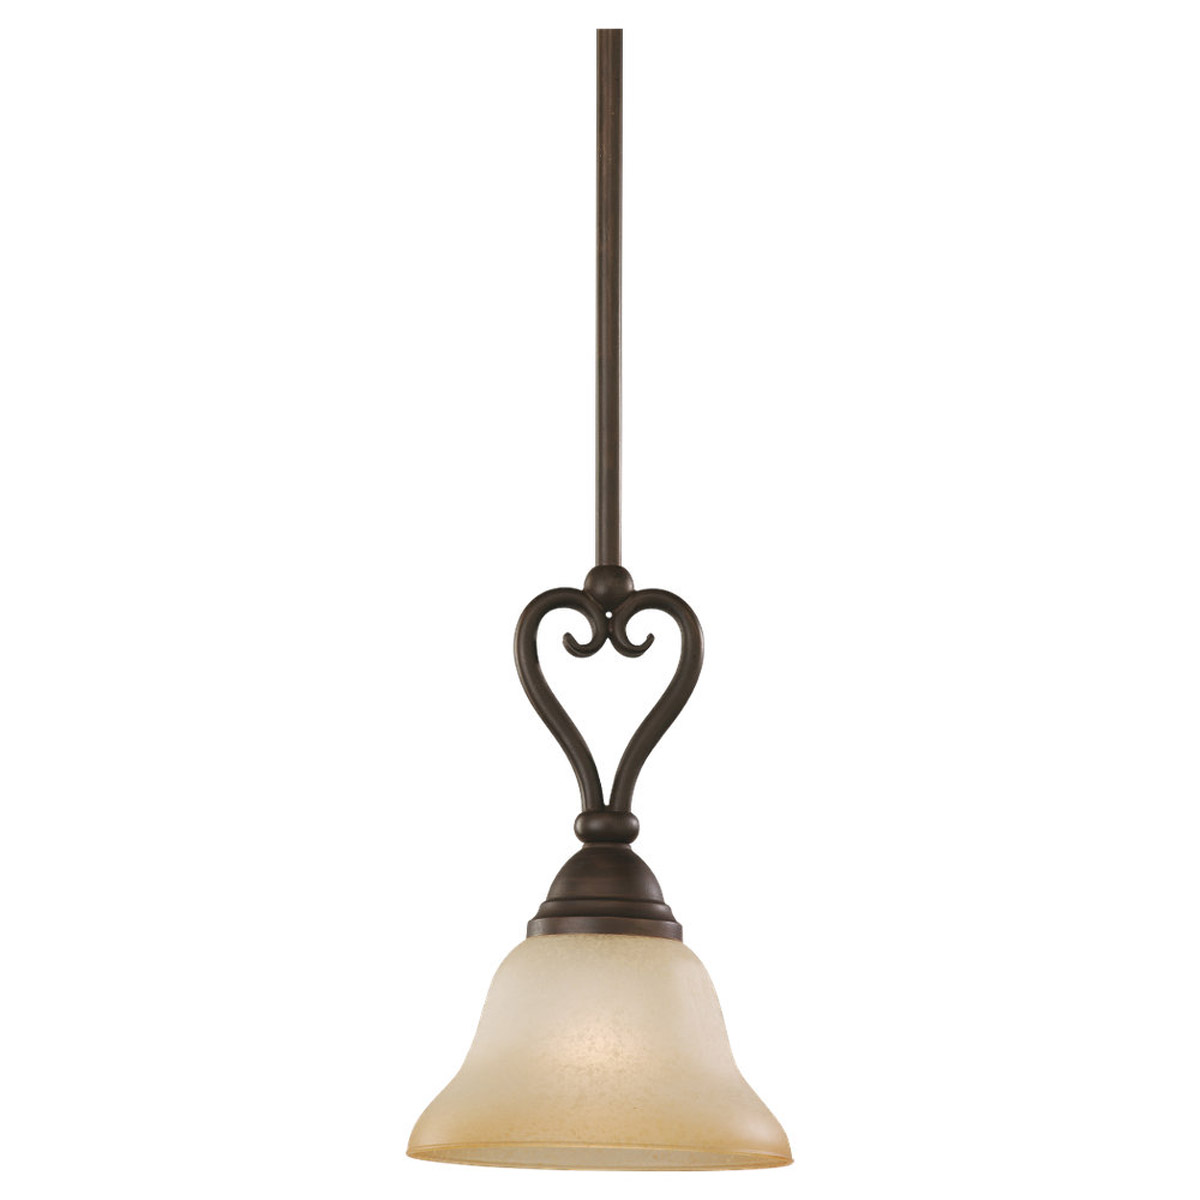 Sea Gull Lighting Montclaire 1 Light Pendant in Olde Iron 61105-72 photo